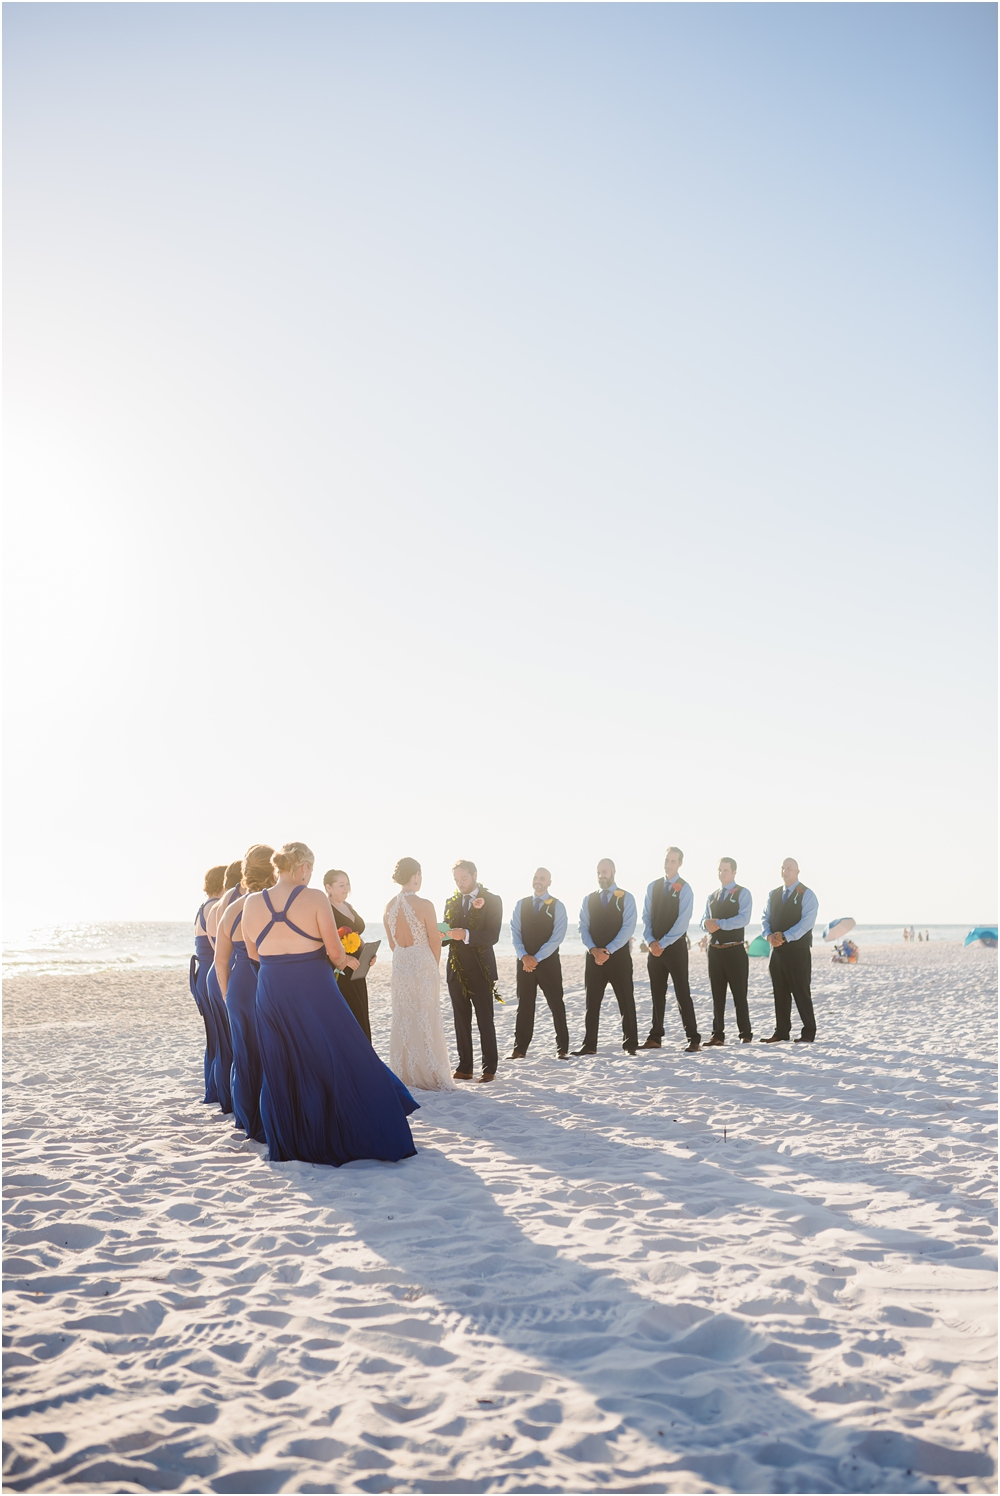 ledman-wedding-kiersten-stevenson-photography-30a-panama-city-beach-dothan-tallahassee-(216-of-763).JPG